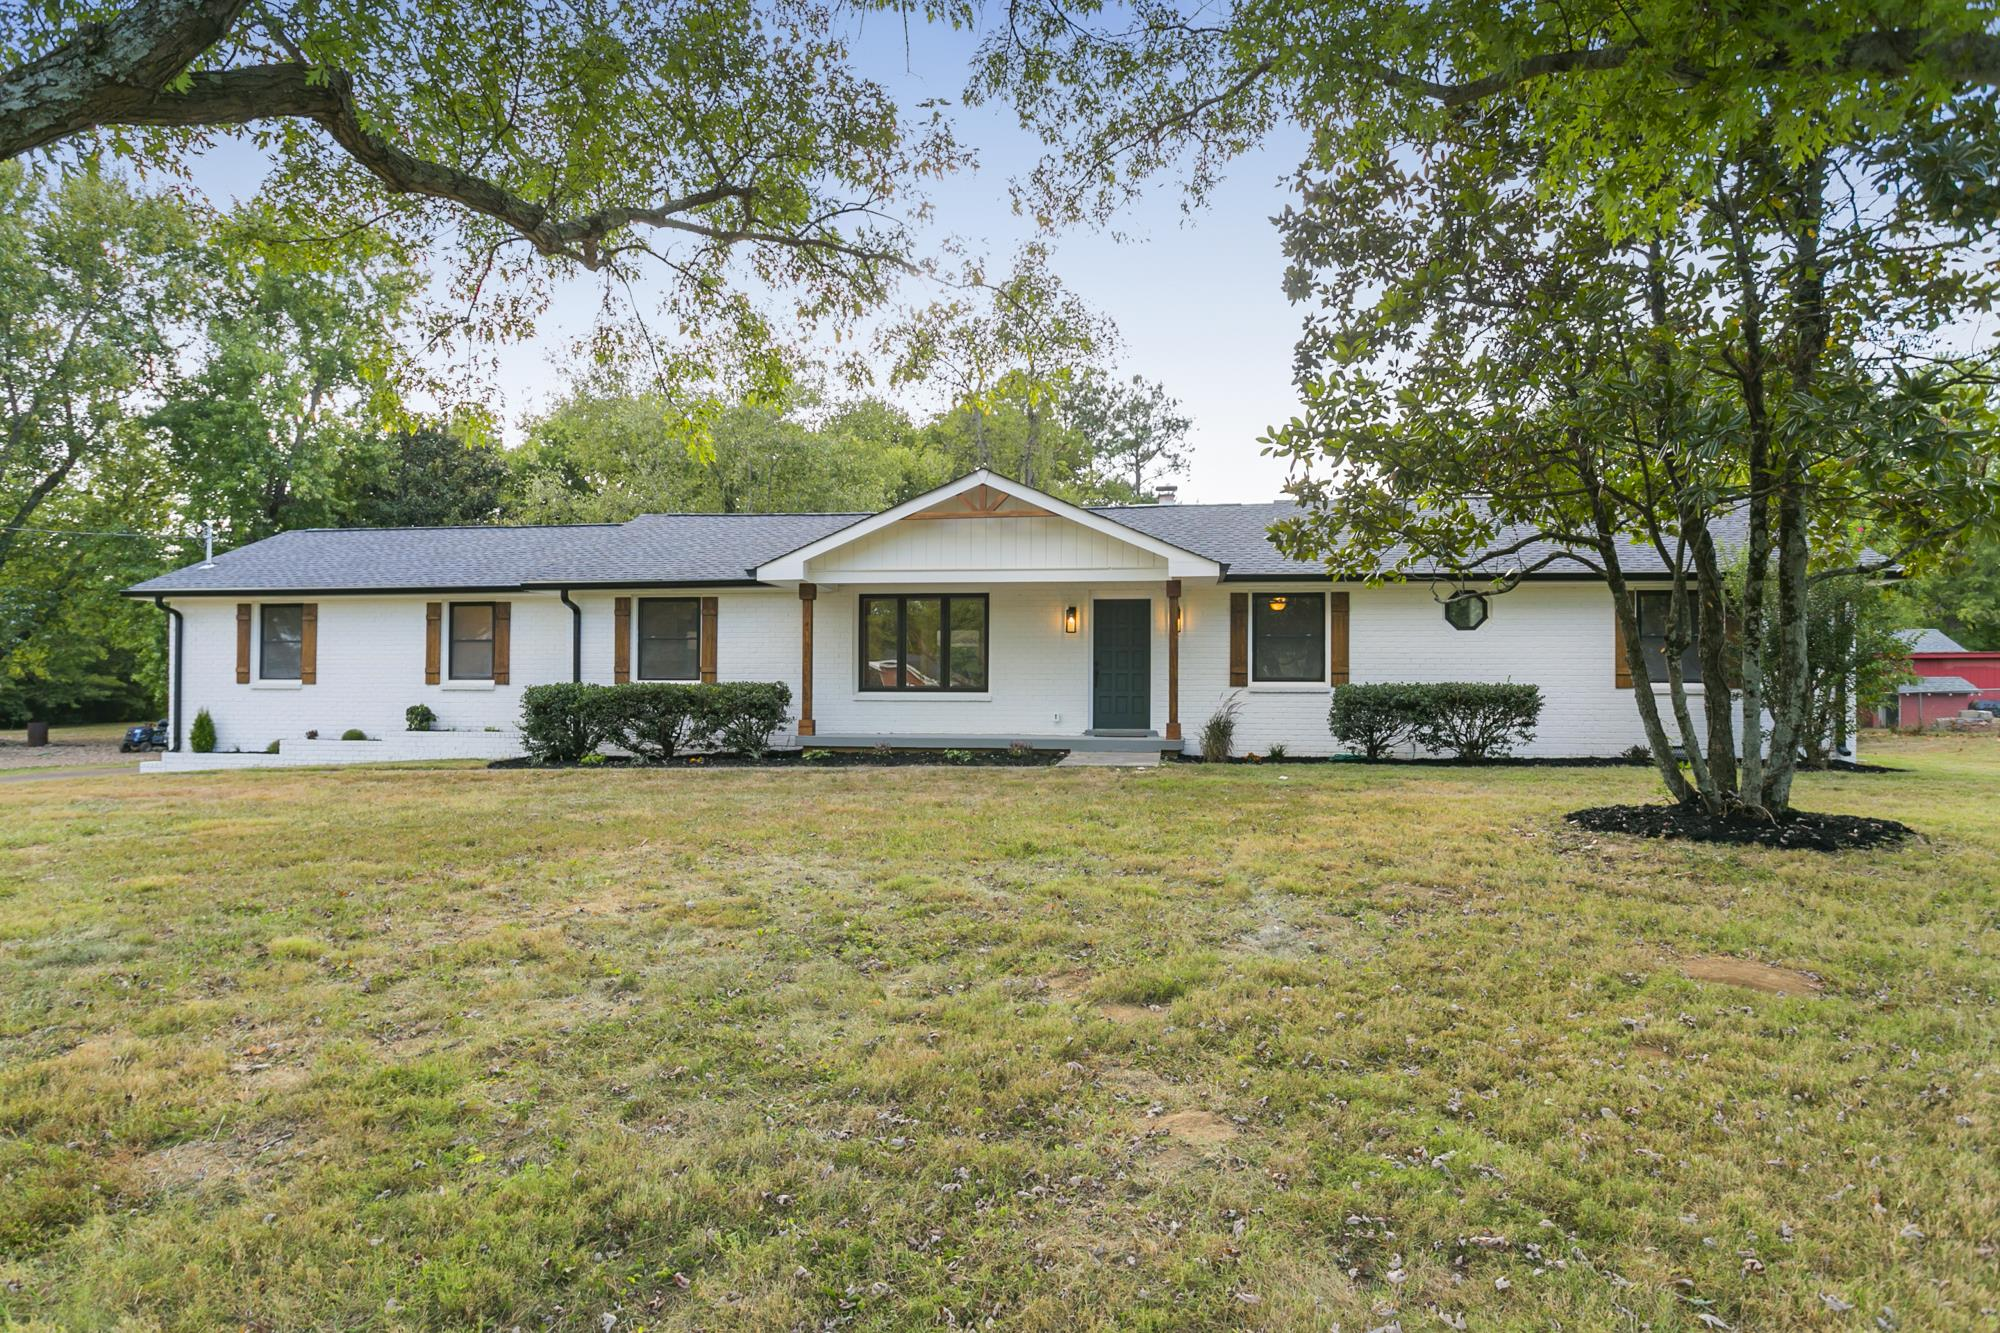 6133 Beals Ln, Nashville, TN 37218 - Nashville, TN real estate listing